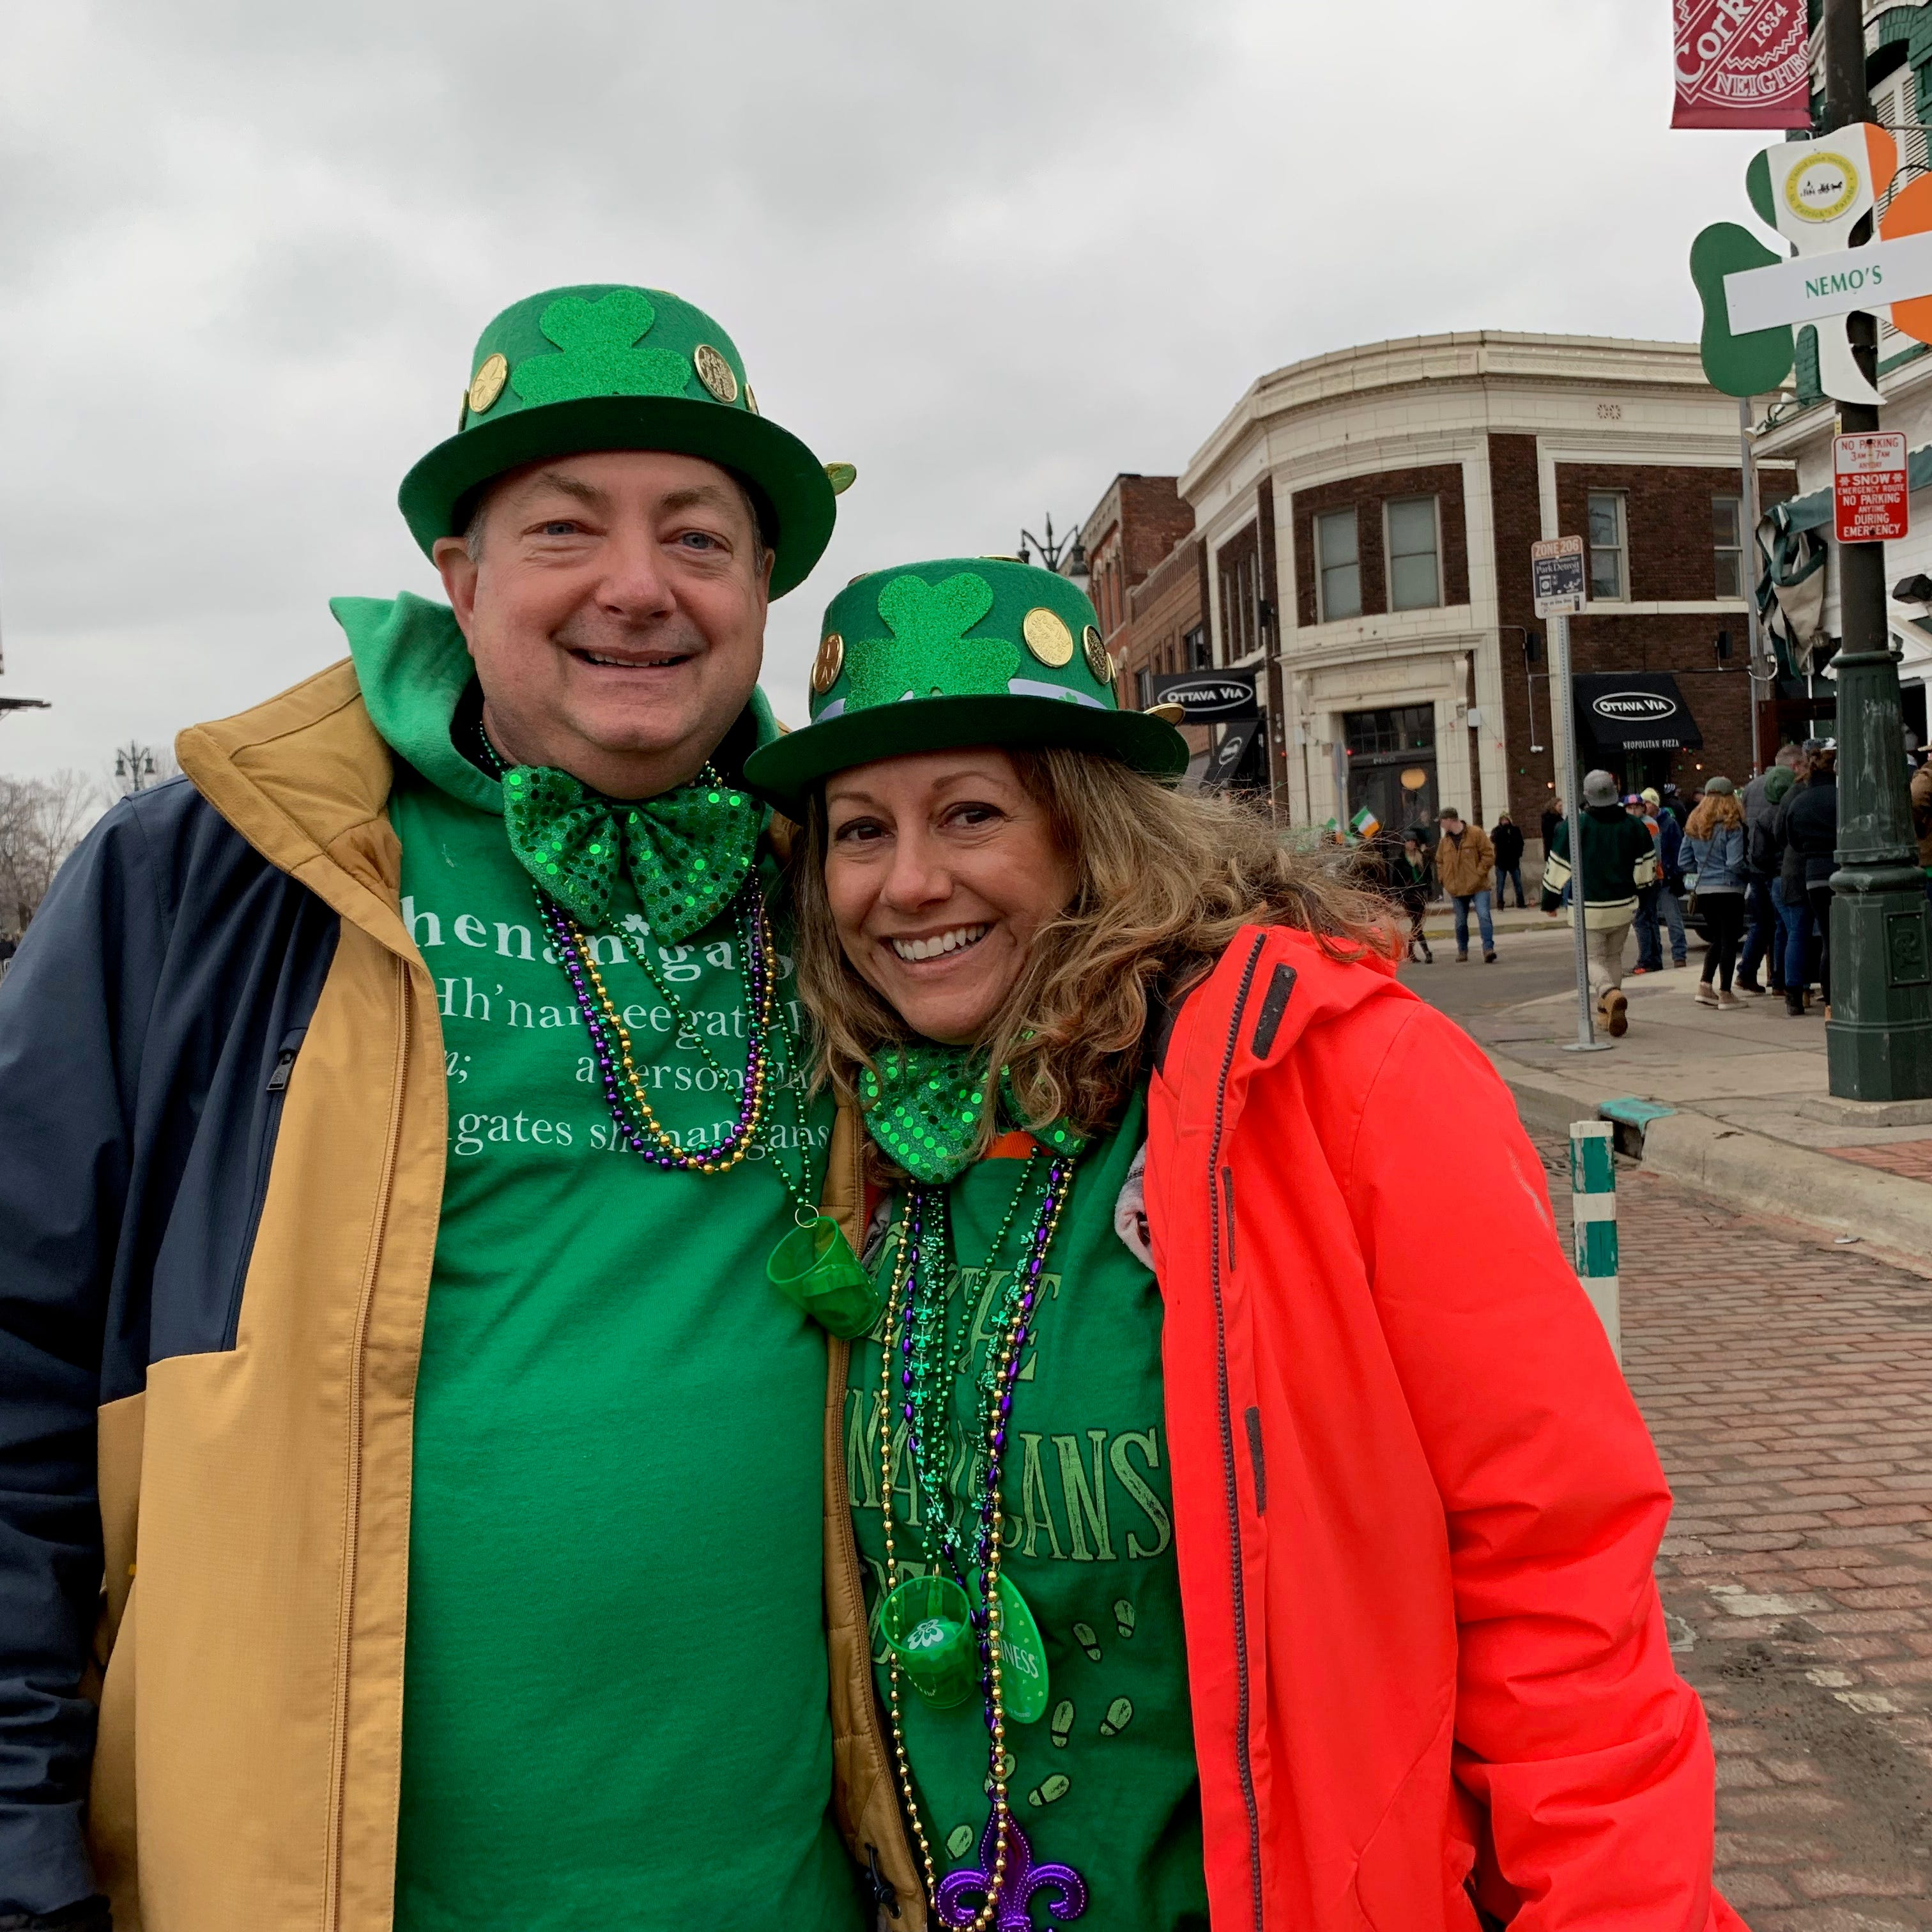 Folks clad in green keep tradition at Corktown's St. Patrick's Day Parade